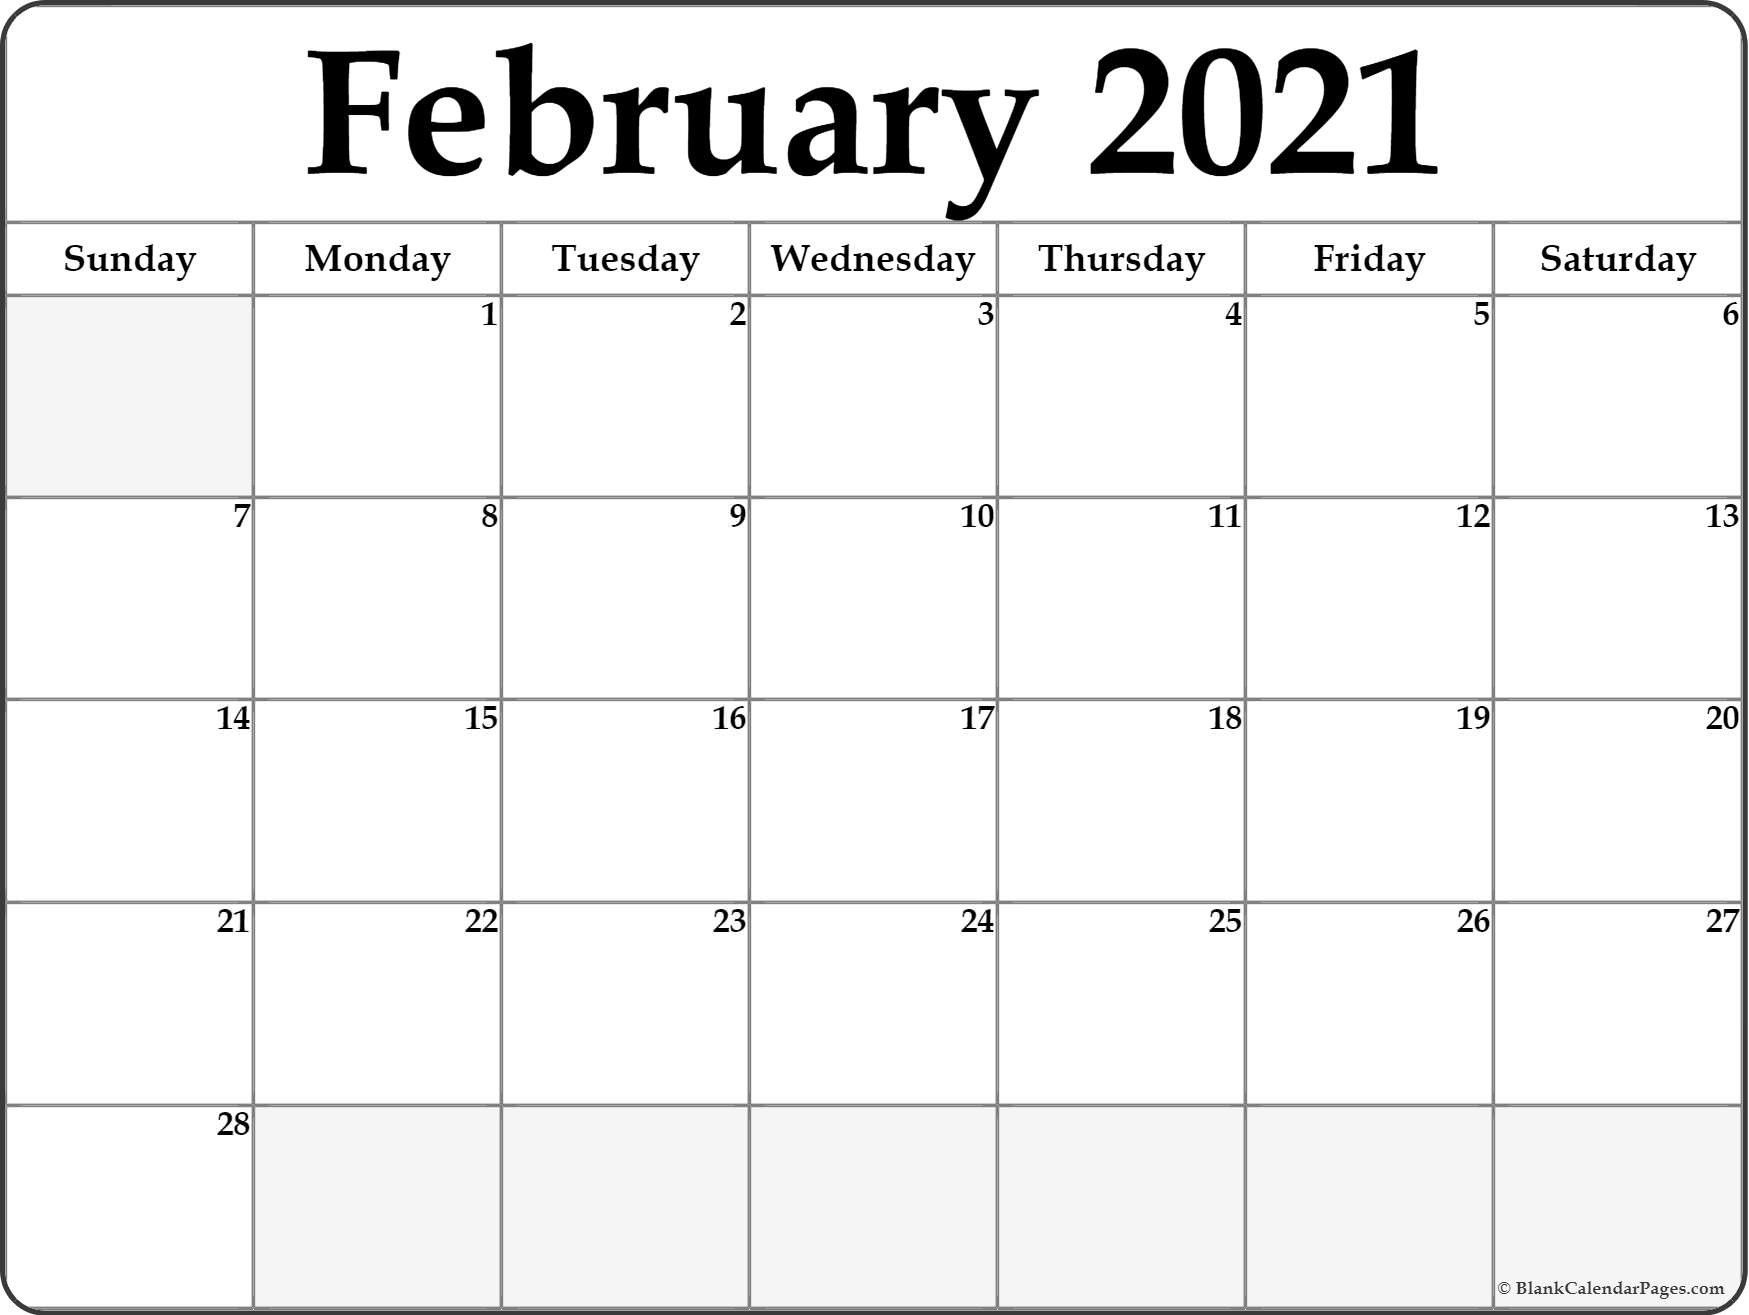 Printable Calendar For February 2021 Printable February 2021 Calendar in 2021 | Free printable calendar